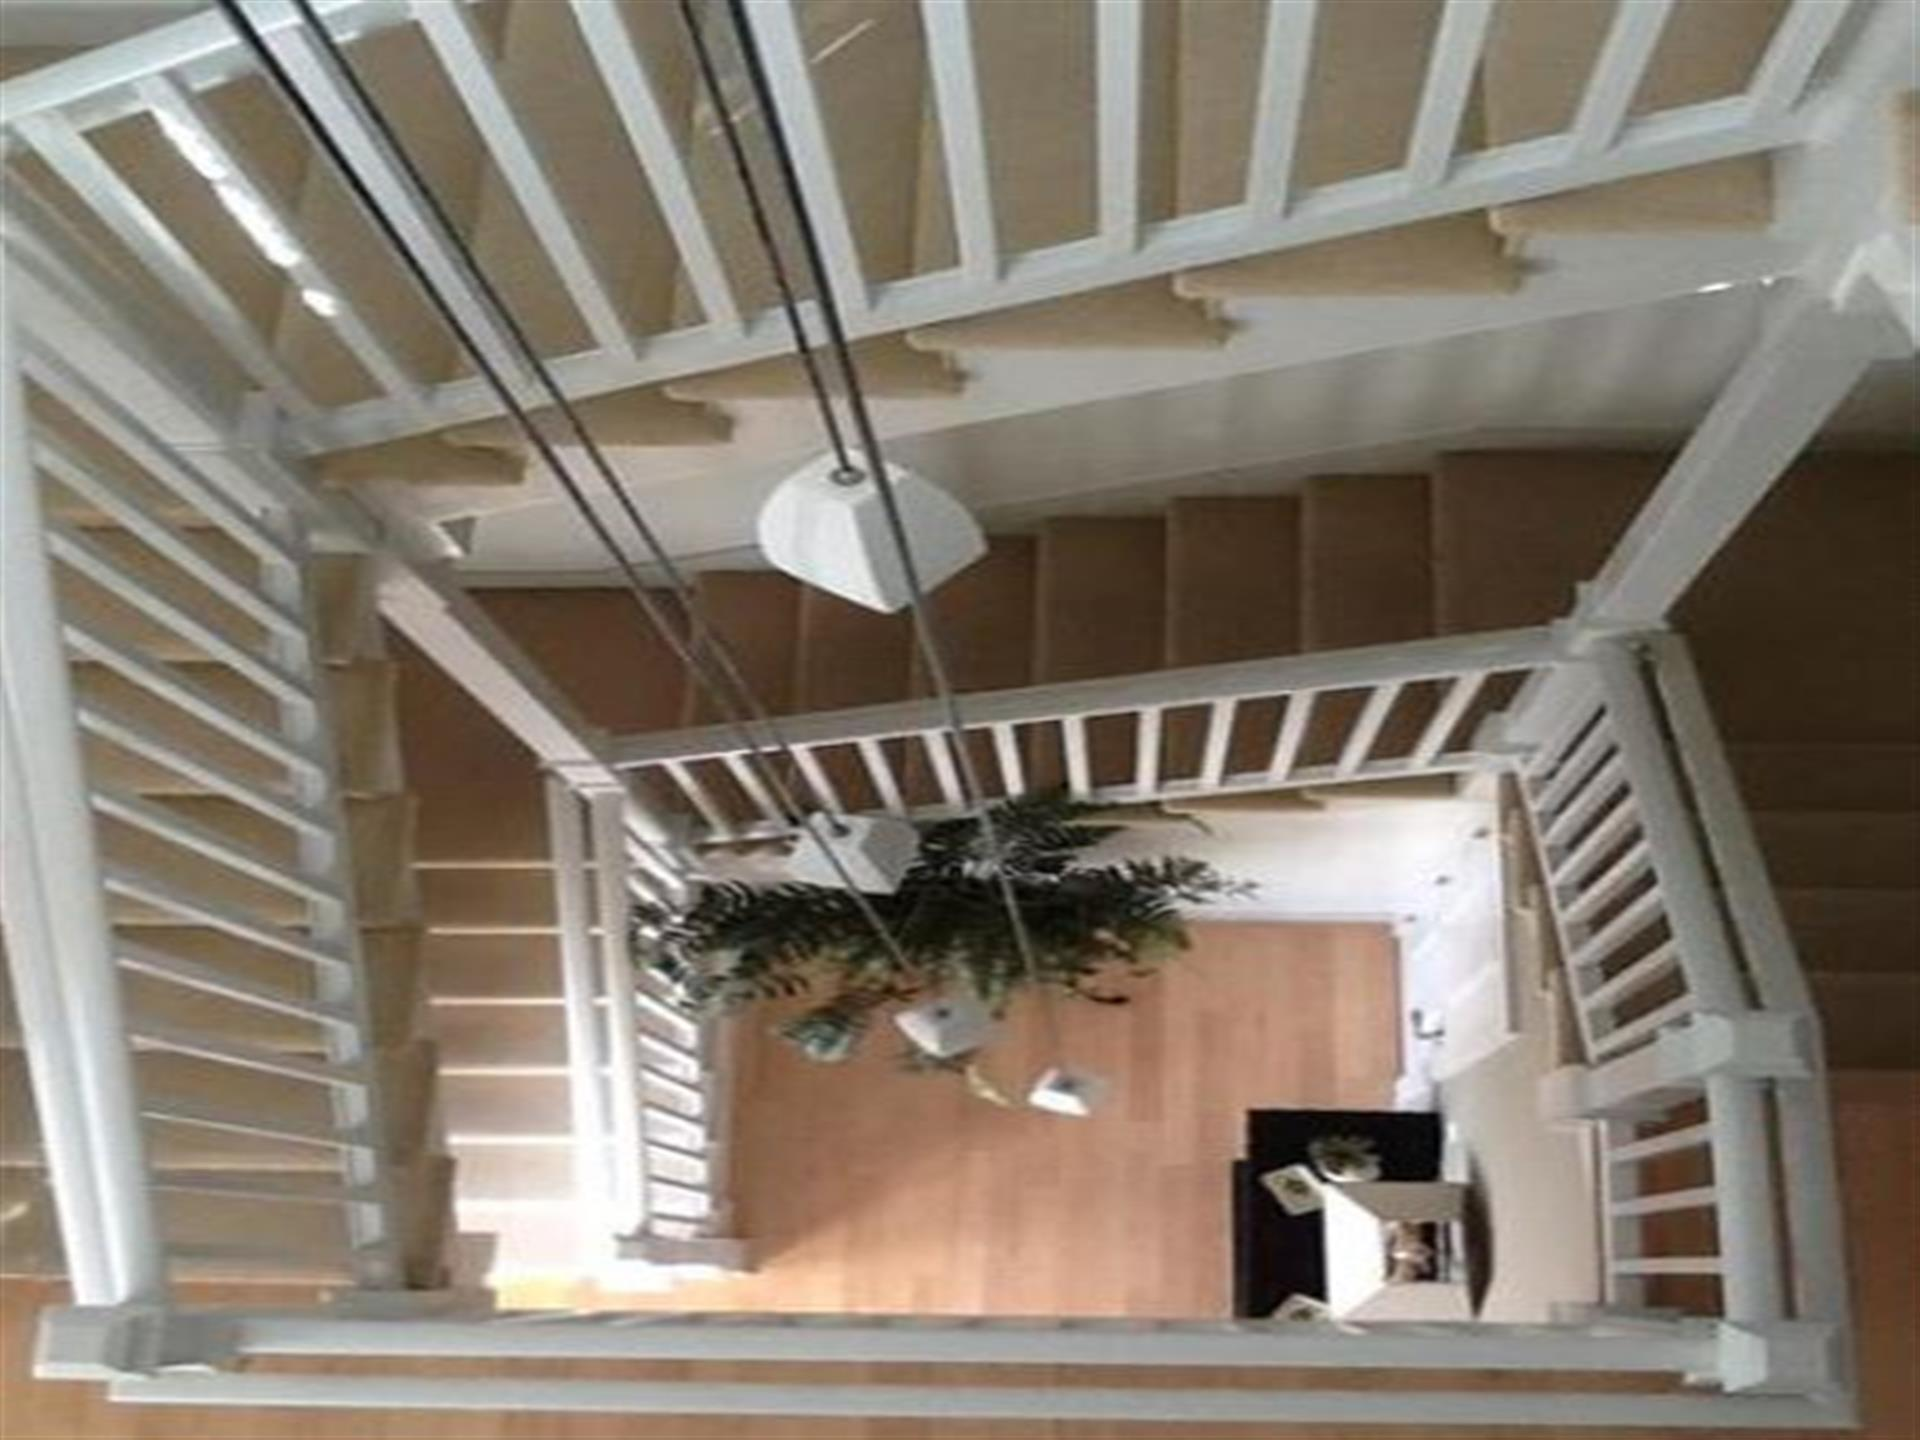 Staircase view from Above